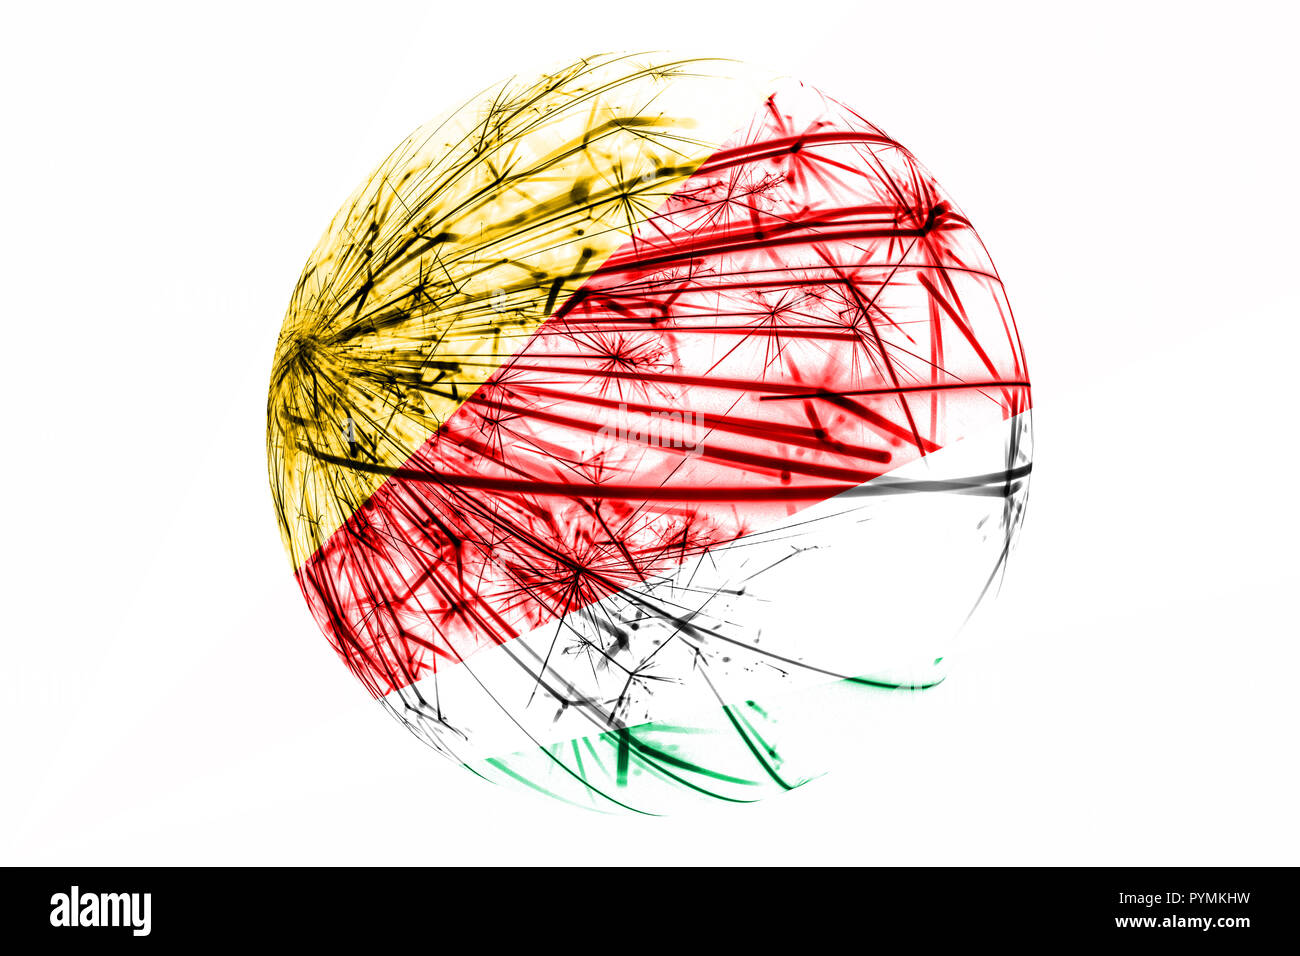 Abstract Seychelles sparkling flag, Christmas ball concept isolated on white background - Stock Image